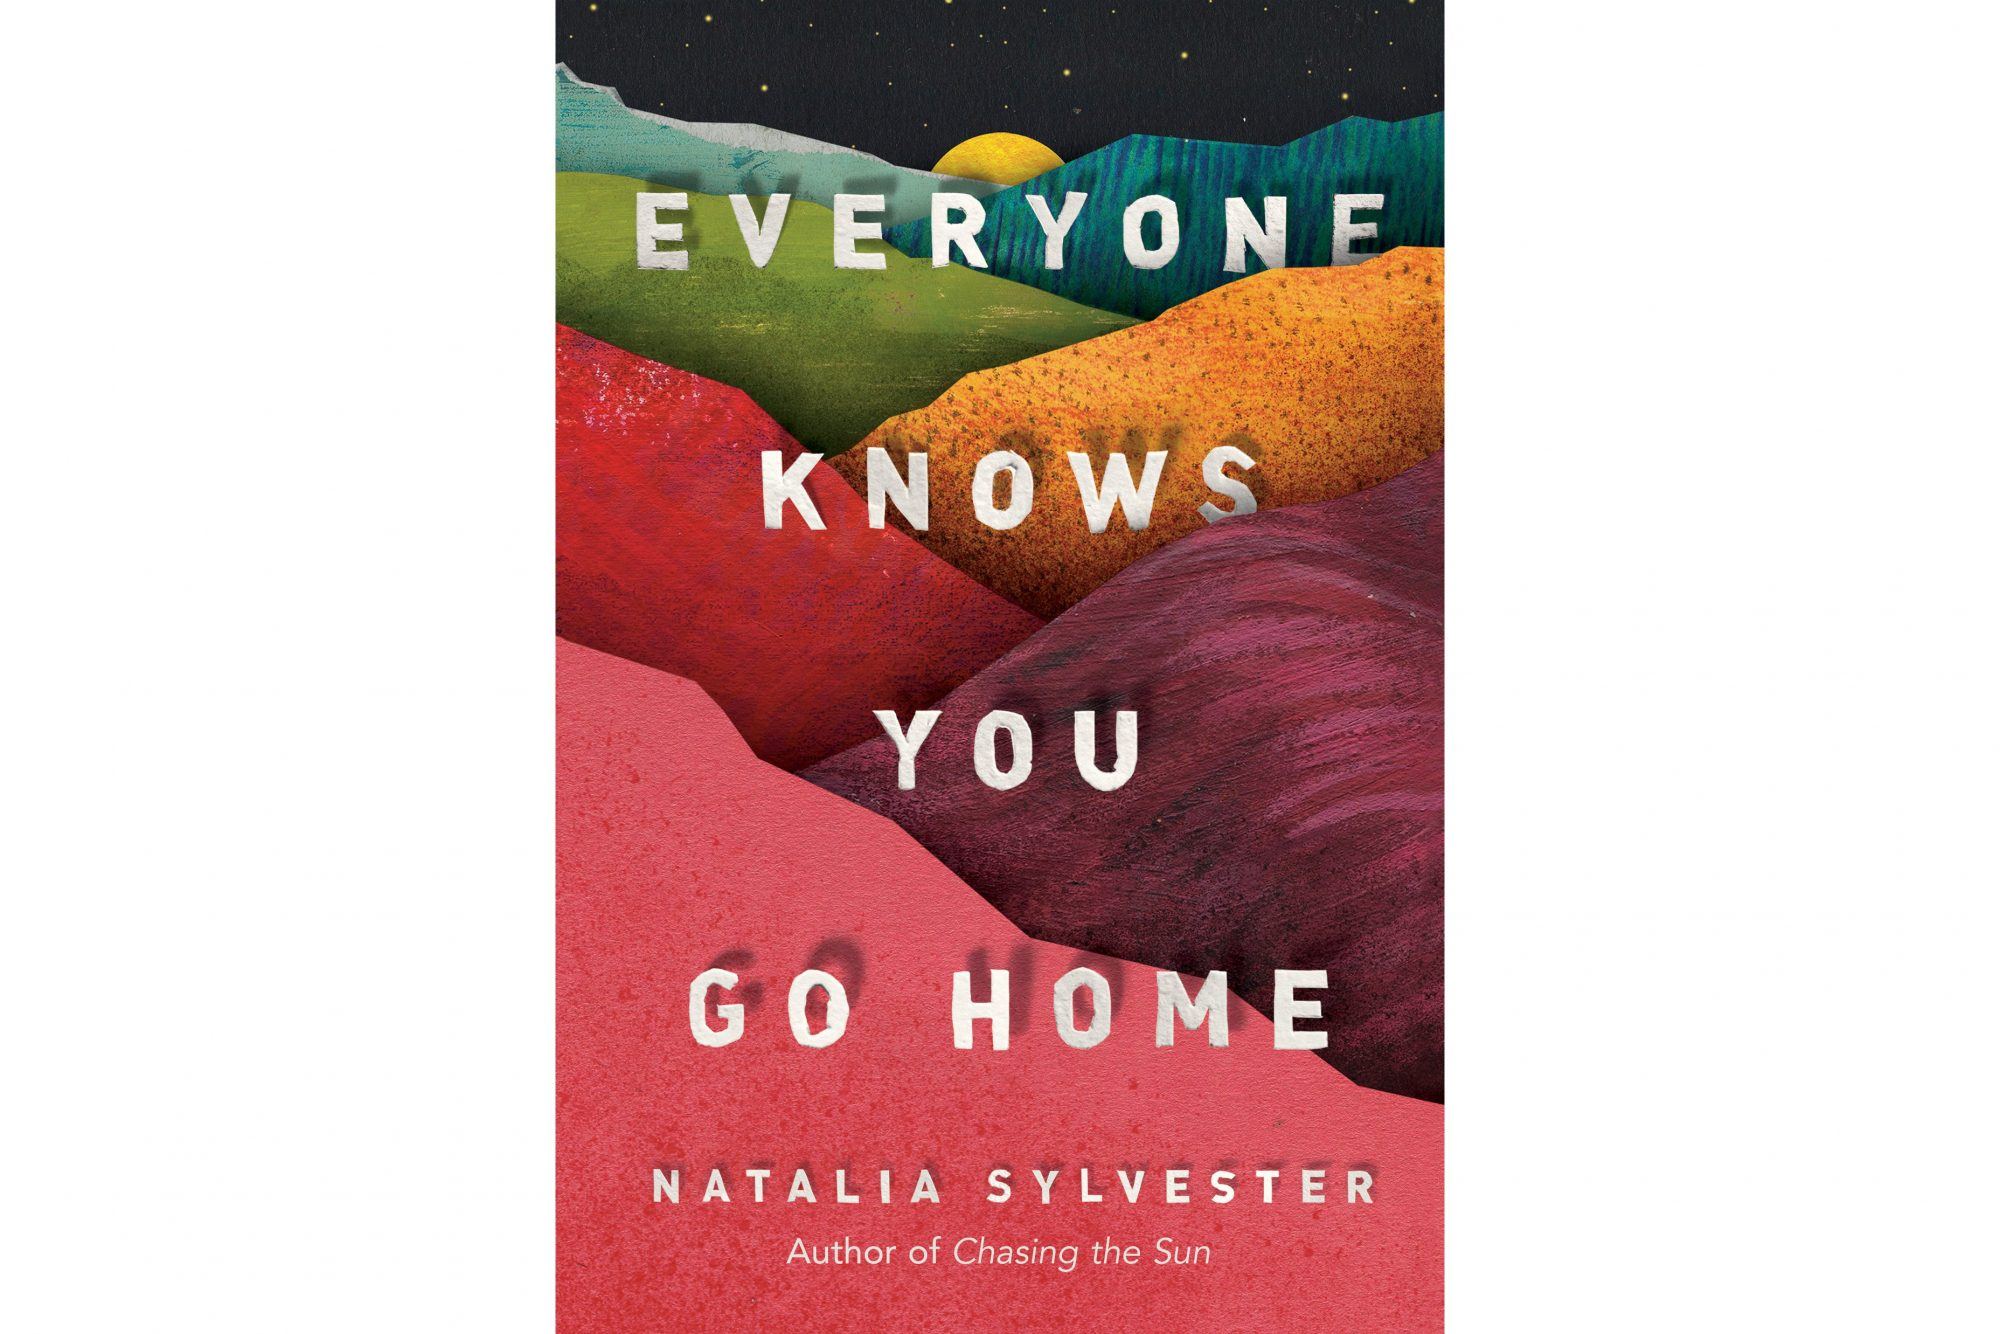 Everyone Knows You Go Home, by Natalia Sylvester